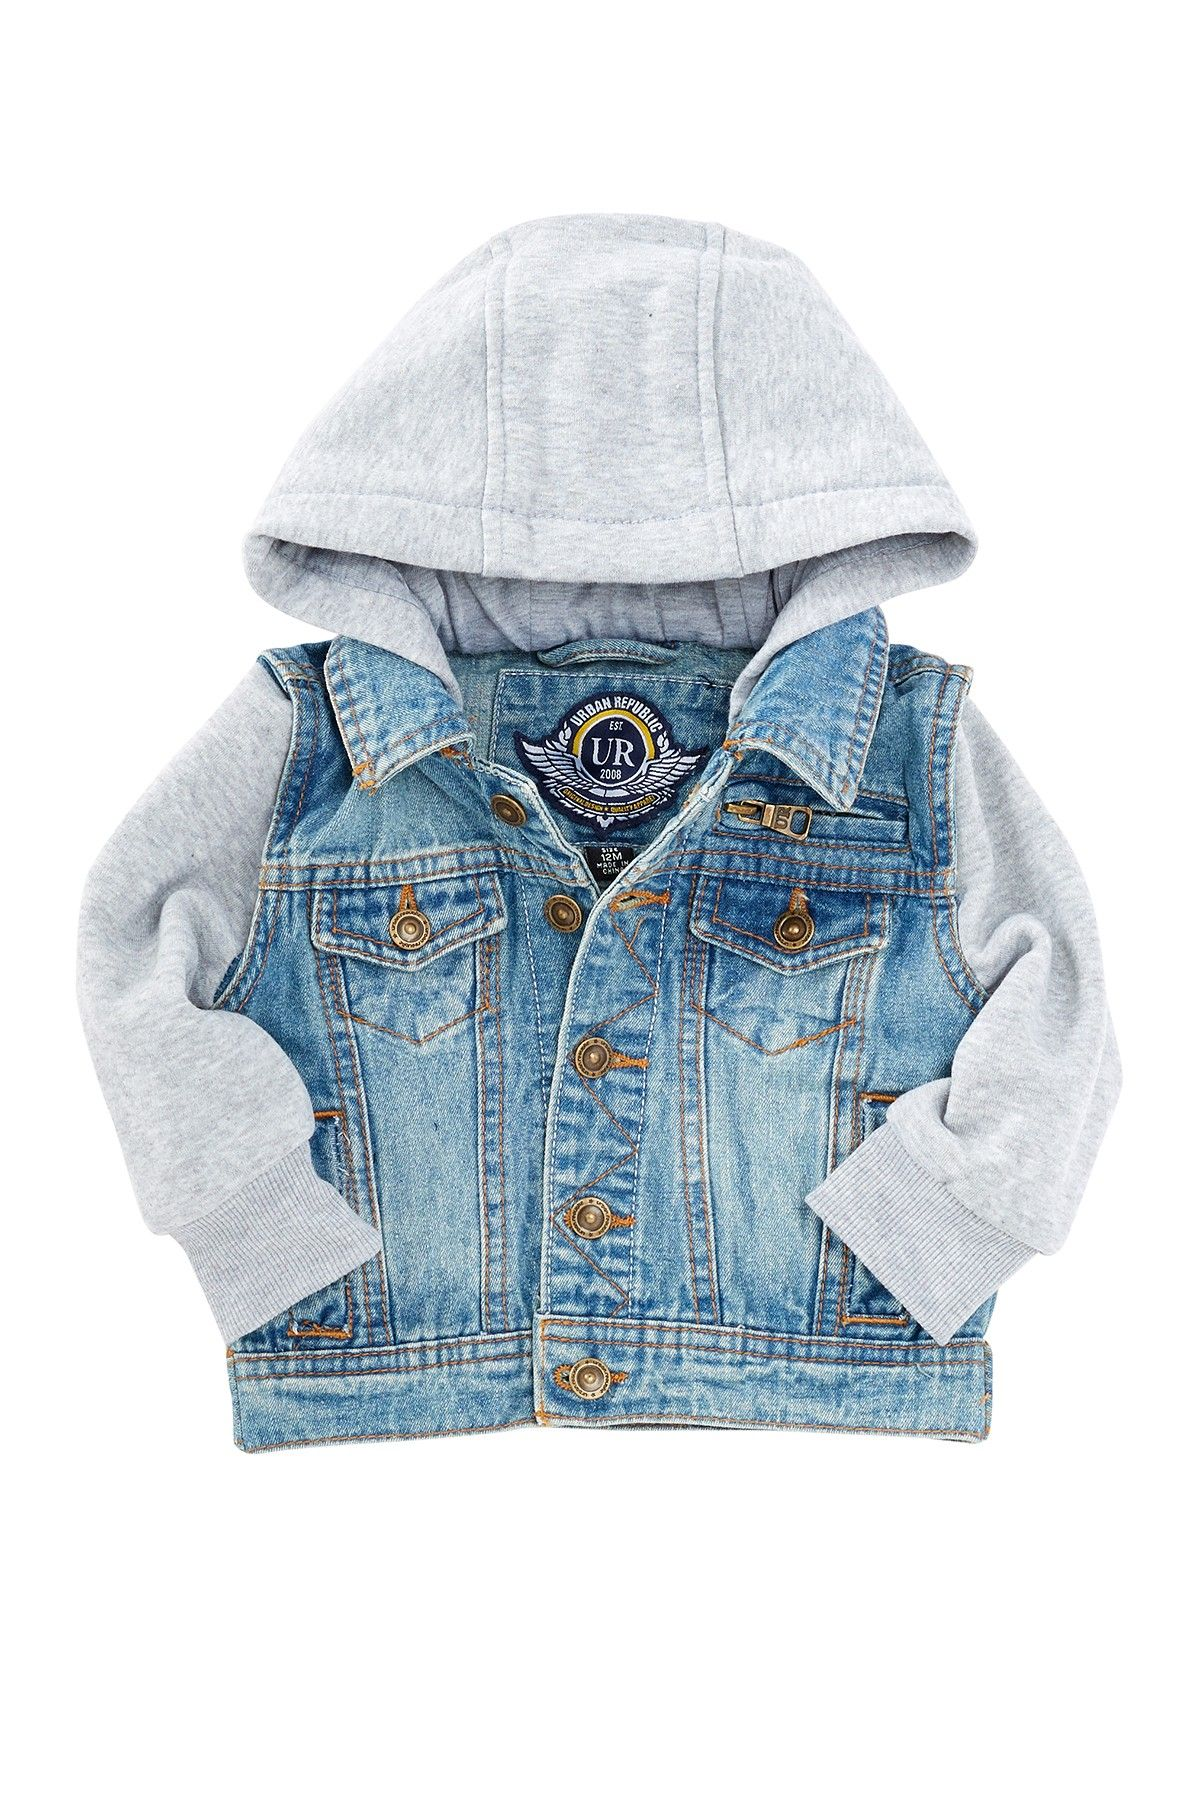 Urban Republic Kids Baby Boys Washed Denim Jacket Infant//Toddler